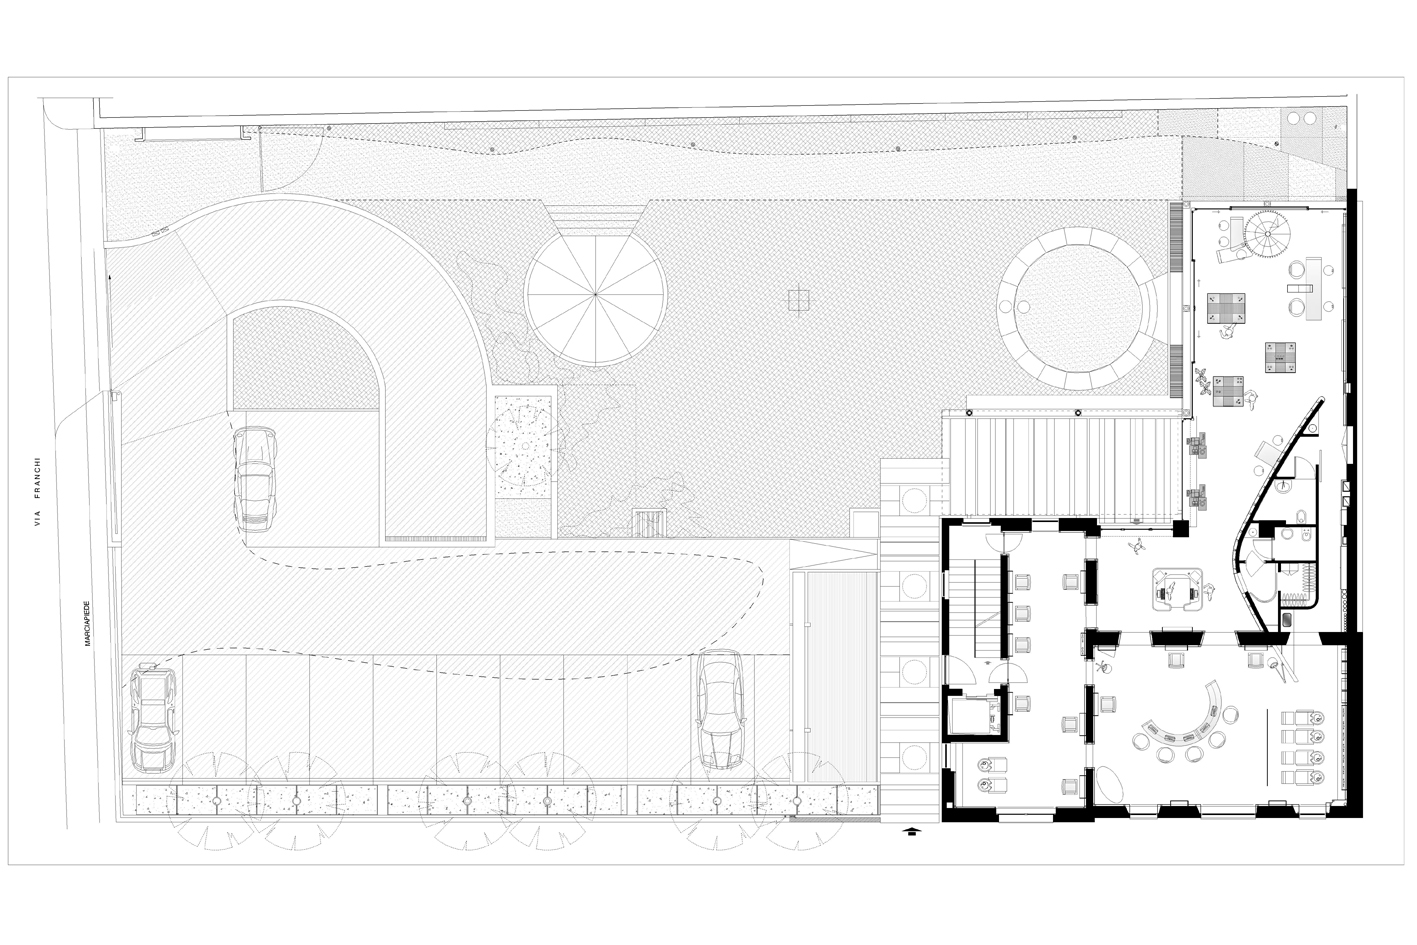 Plan Rnovation Maison Duune Grange Plan Maison Renovation